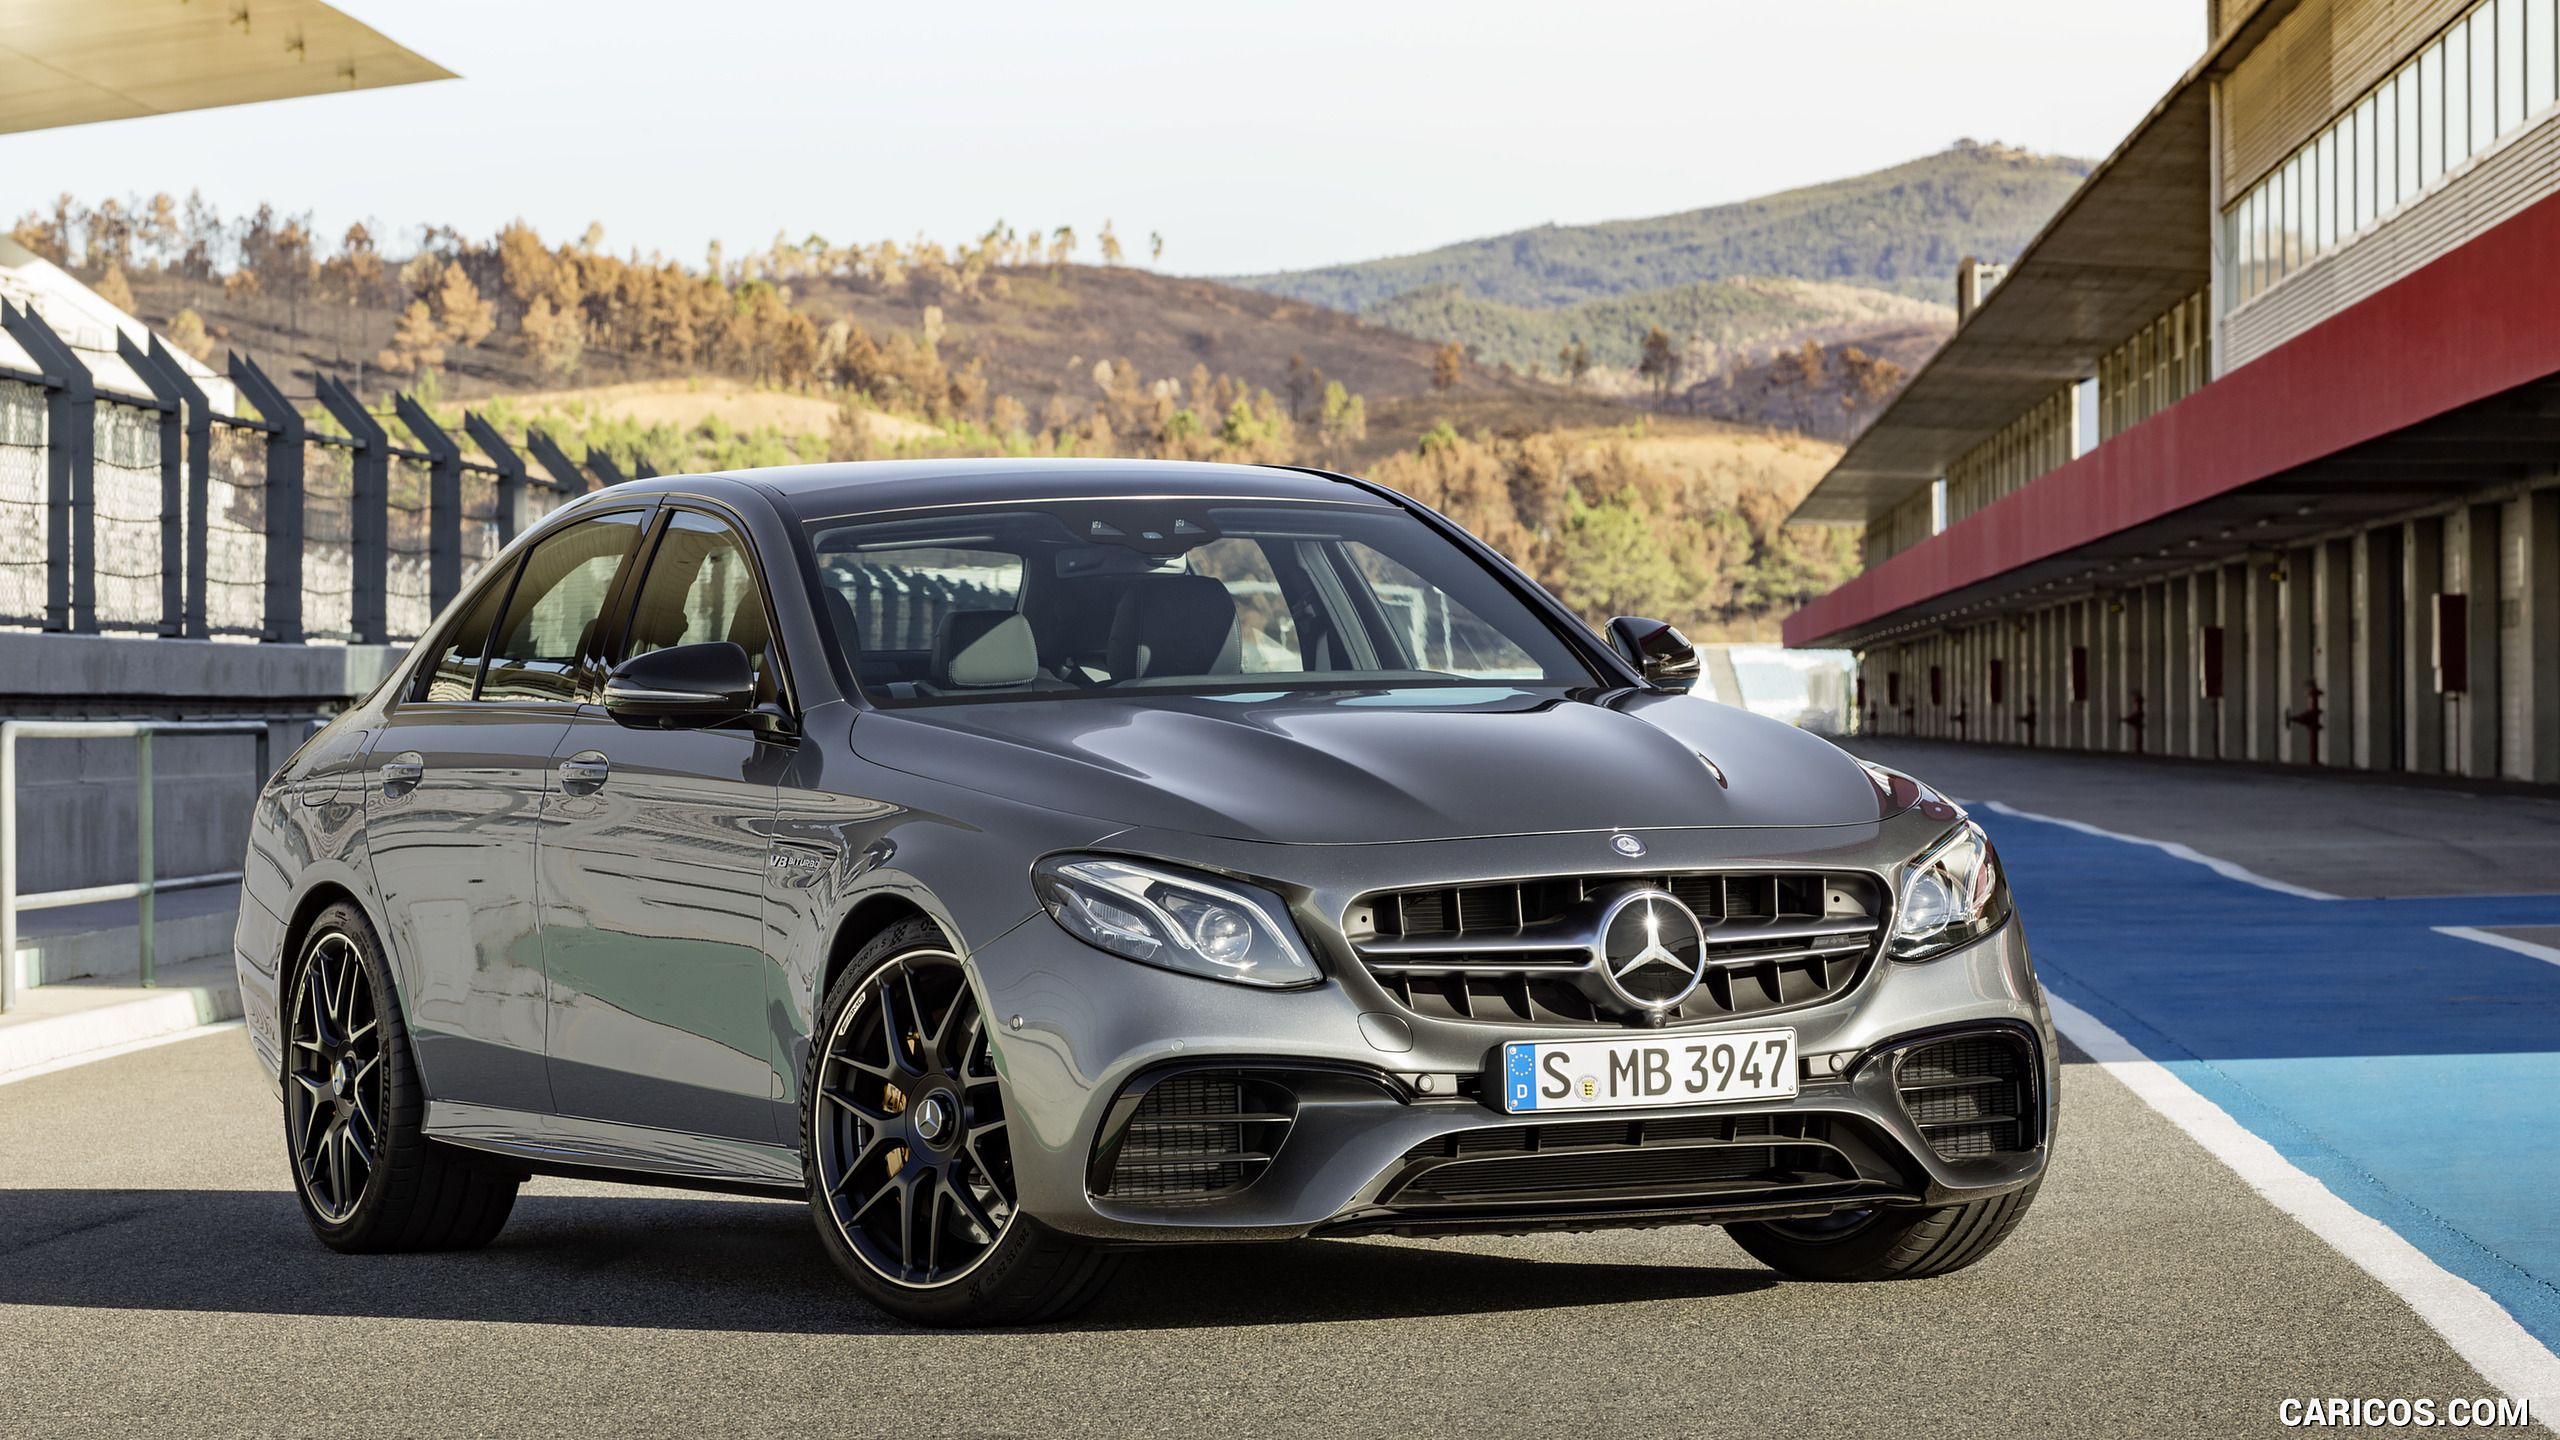 2018 Mercedes AMG E63 S 4MATIC Cars Pinterest